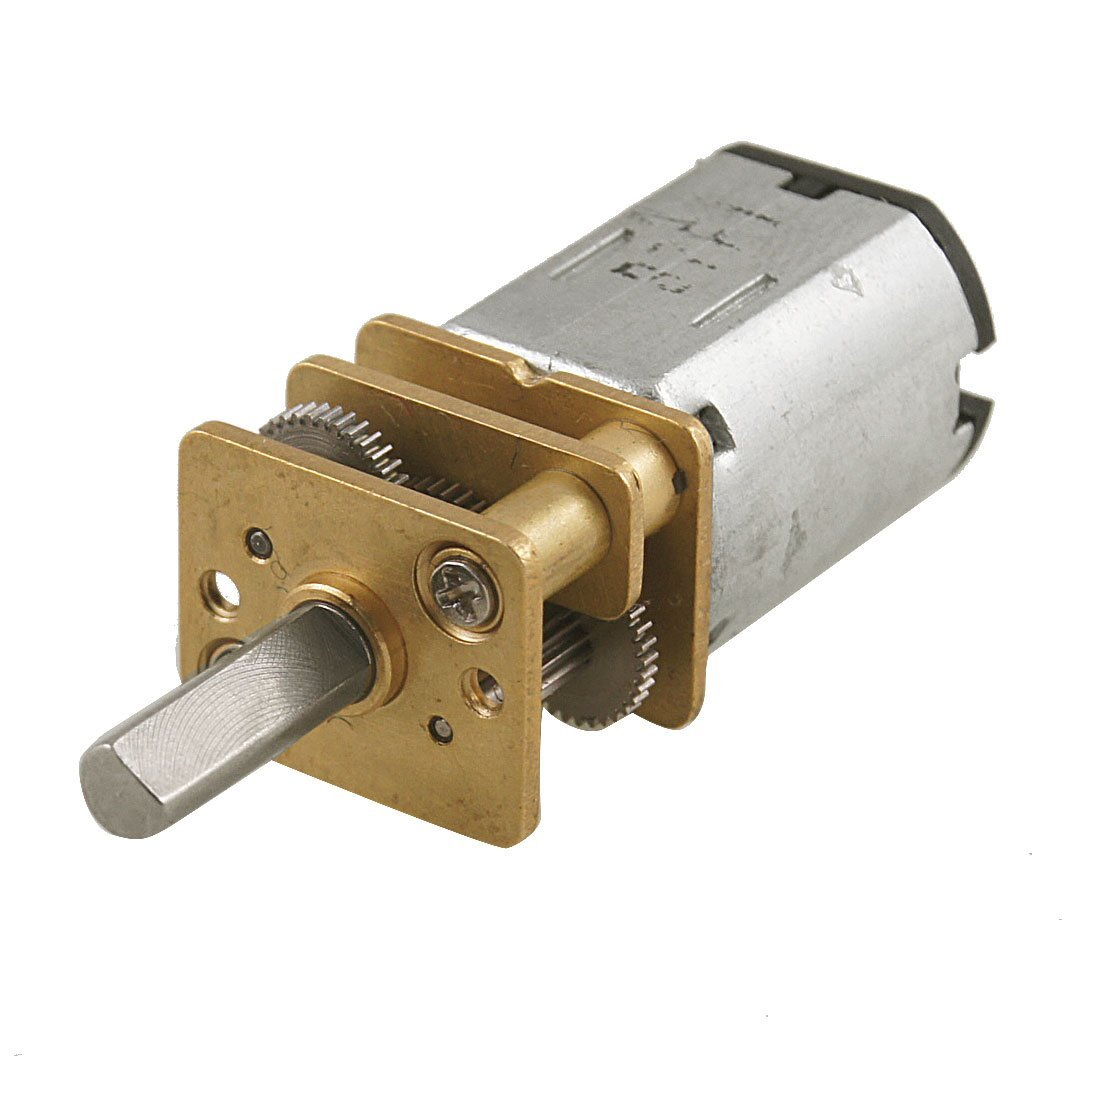 uxcell 100RPM 6V 0.4A High Torque Mini Electric DC Geared Motor for DIY Toys